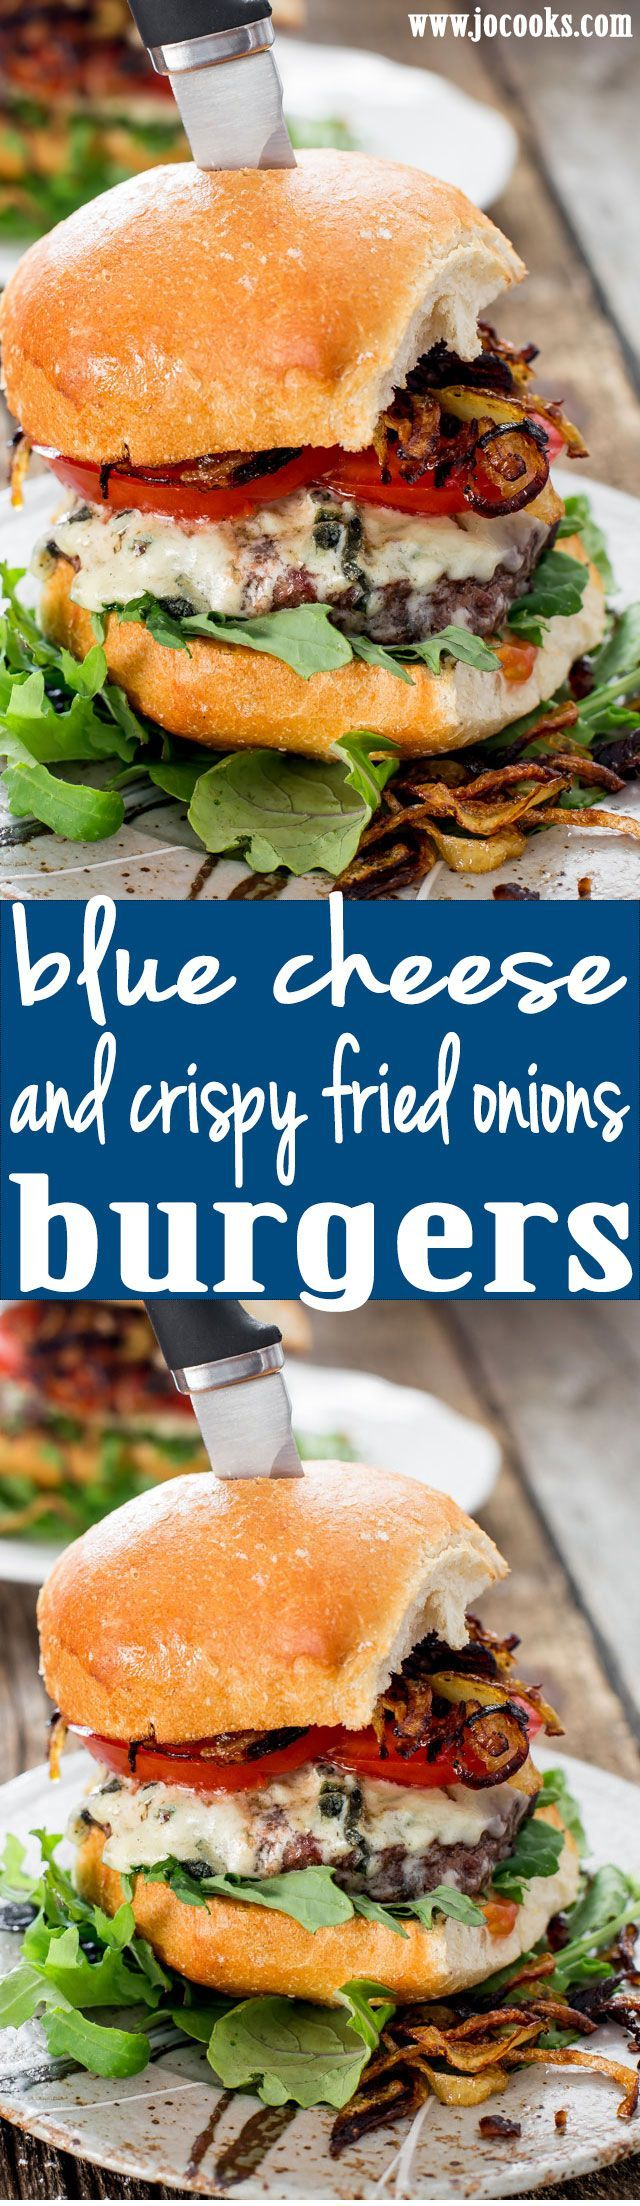 Blue Cheese and Crispy Fried Onion Burgers - these incredible burgers with tangy and creamy blue cheese and crispy fried onions are perfect for your weekend barbecue.